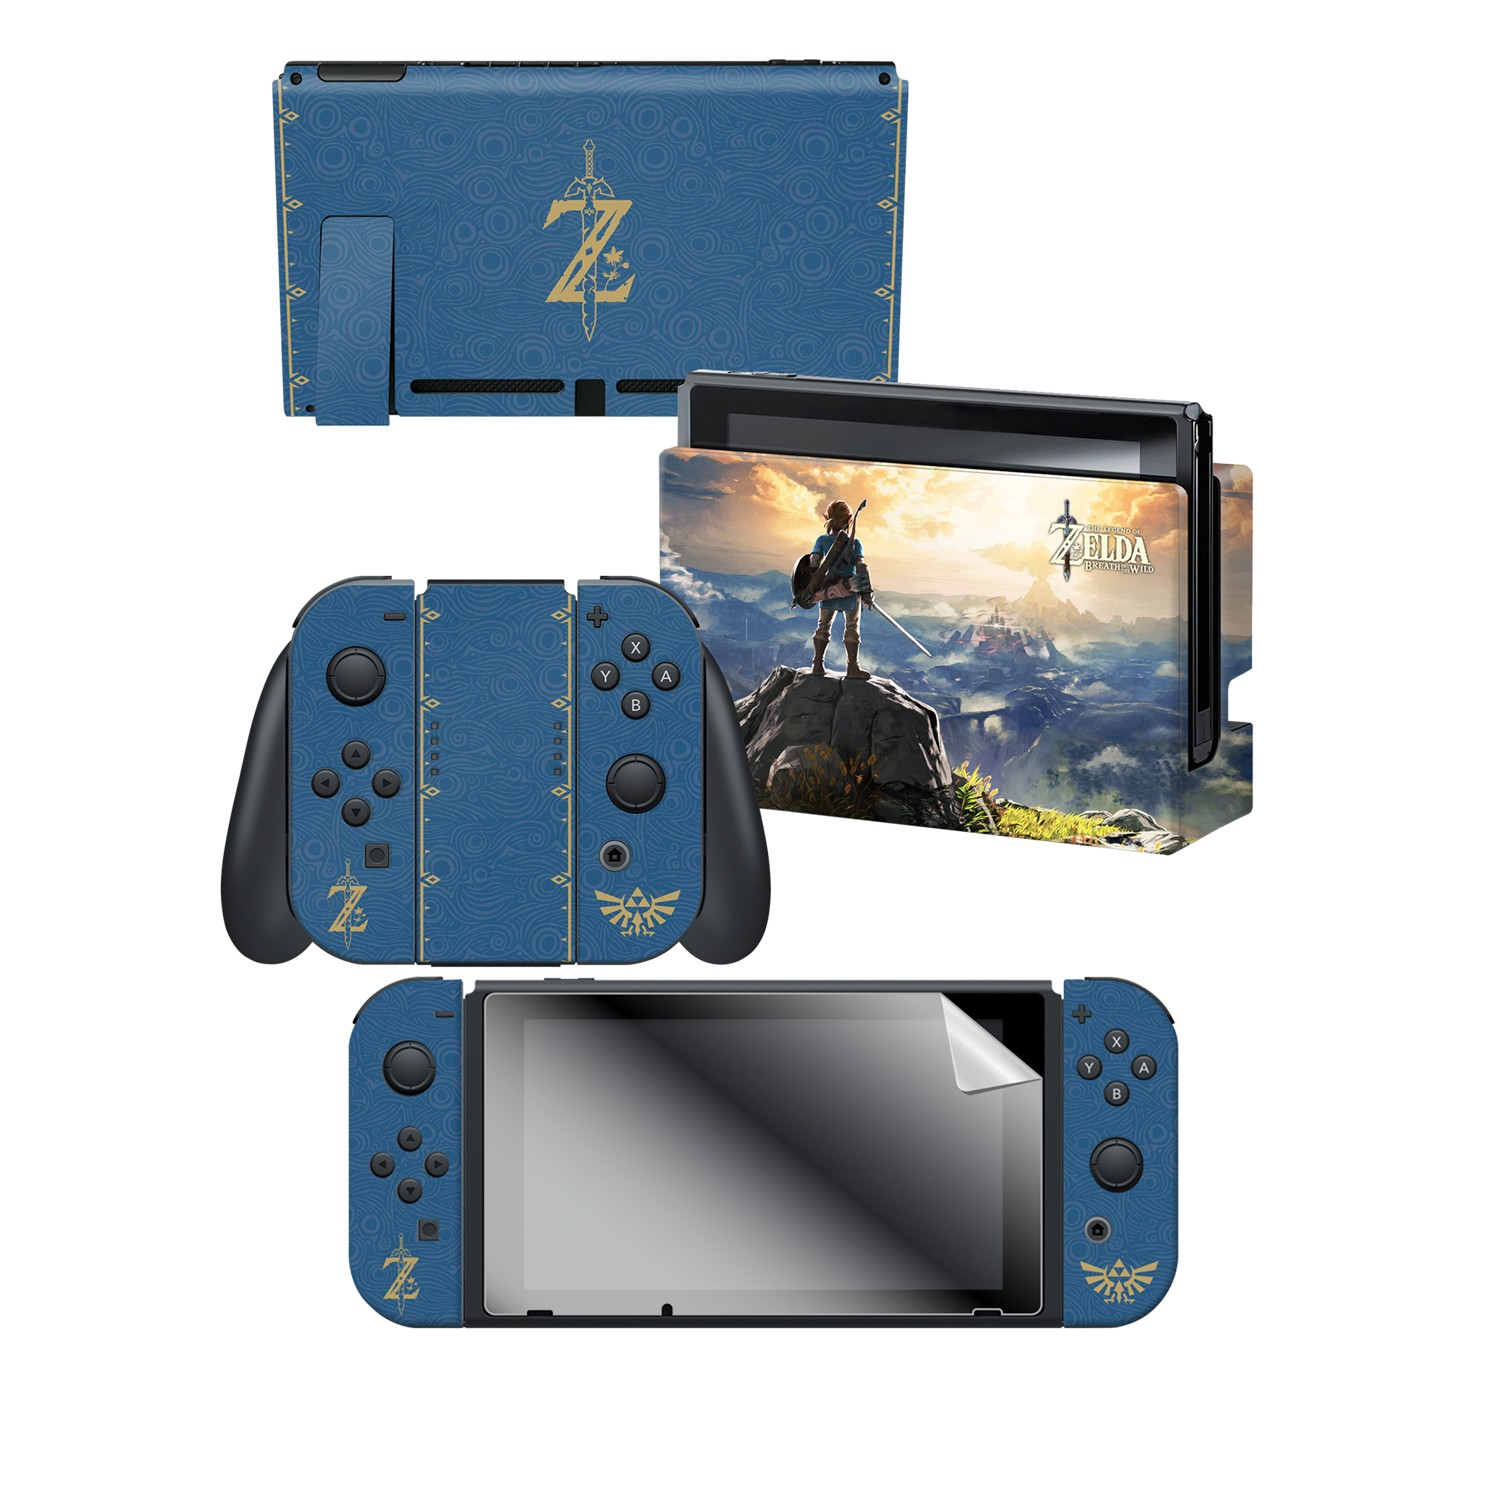 "The Legends of Zelda™: BotW ""The Legends of Zelda™""  Nintendo Switch™ Console skin + Dock Skin + Joy-Con™ skin +  Joy-Con™ Grip Skin + Screen Protector Bundle Assortment"